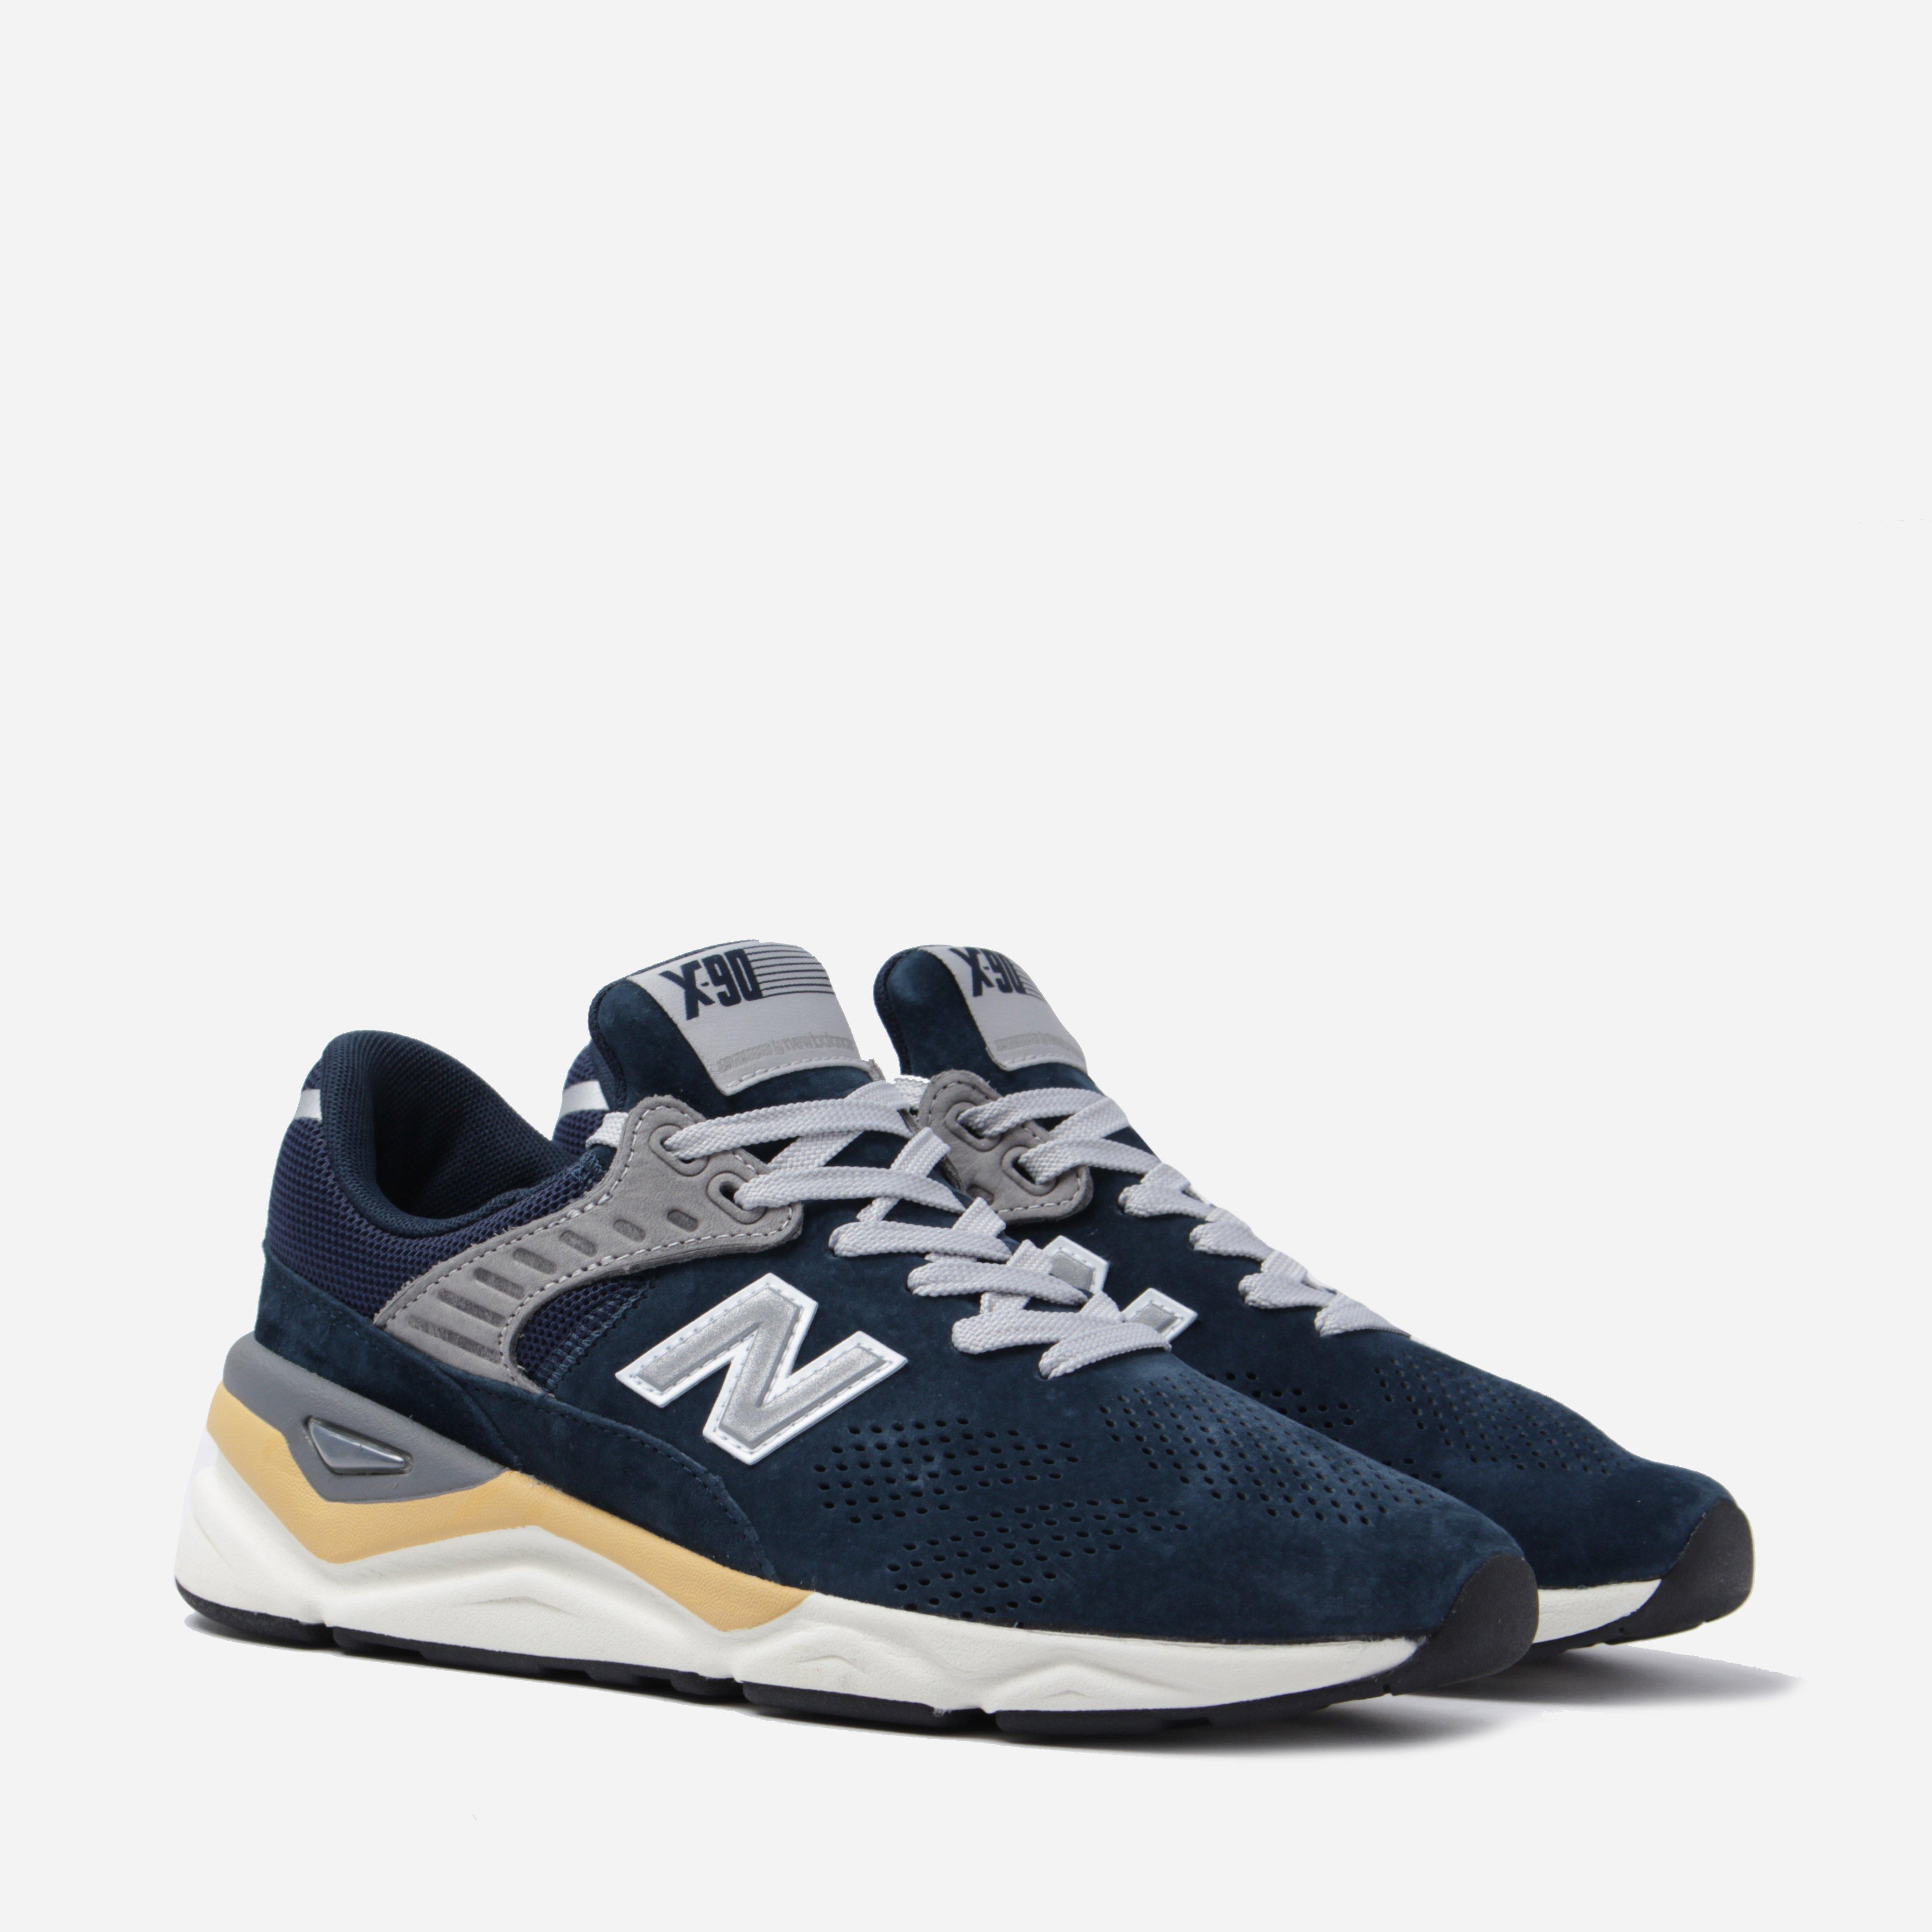 New Balance X90 in Navy (Blue) for Men - Lyst